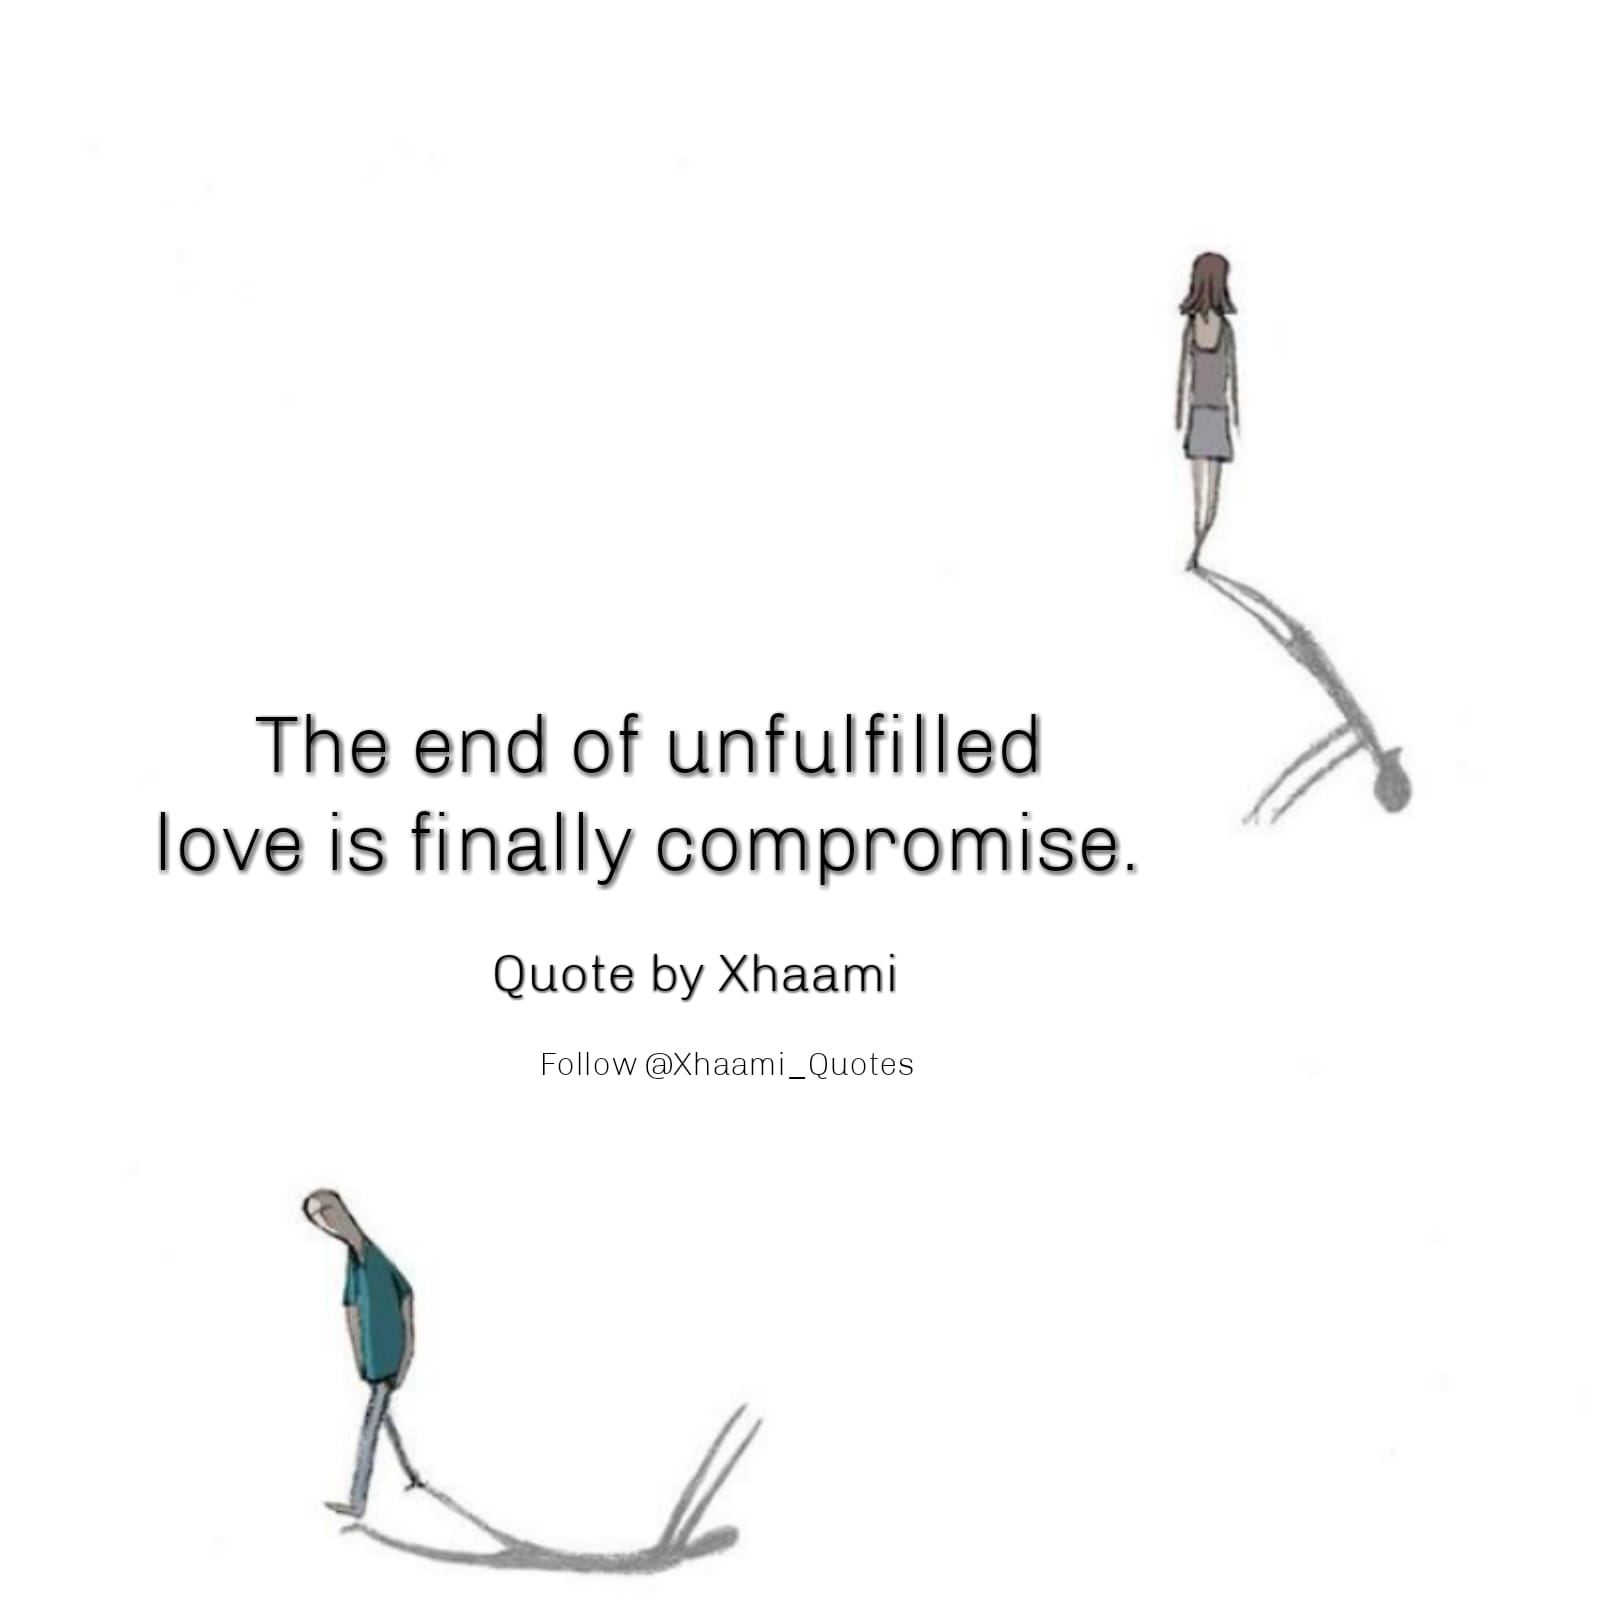 The end of unfulfilled love quote by Xhaami